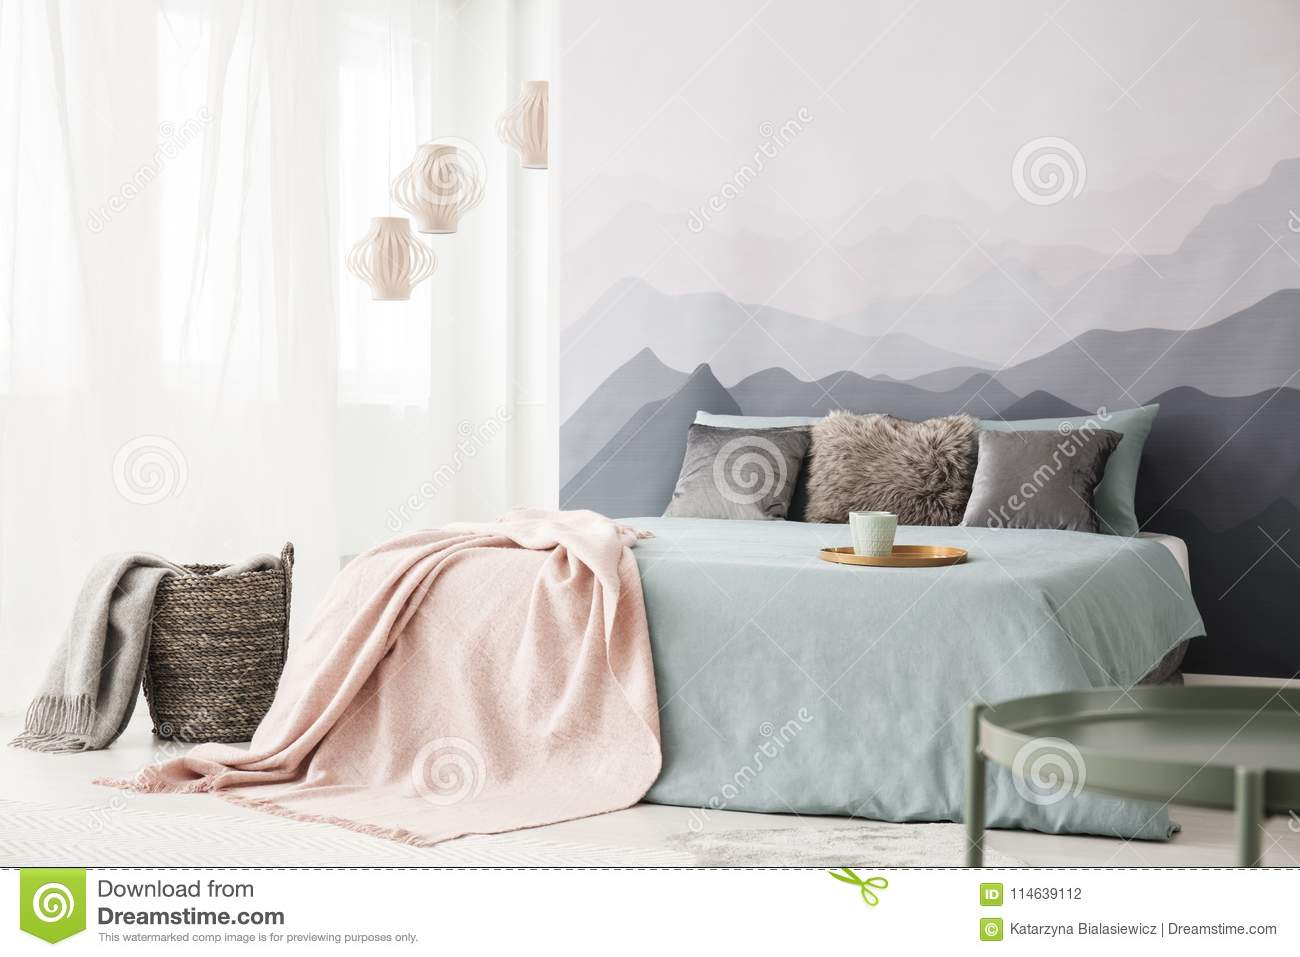 Good Wallpaper Mountain Bedroom - pastel-bedroom-interior-mountain-basket-next-to-bed-pink-blanket-pastel-bedroom-interior-mountain-wallpaper-114639112  Photograph_894079.jpg